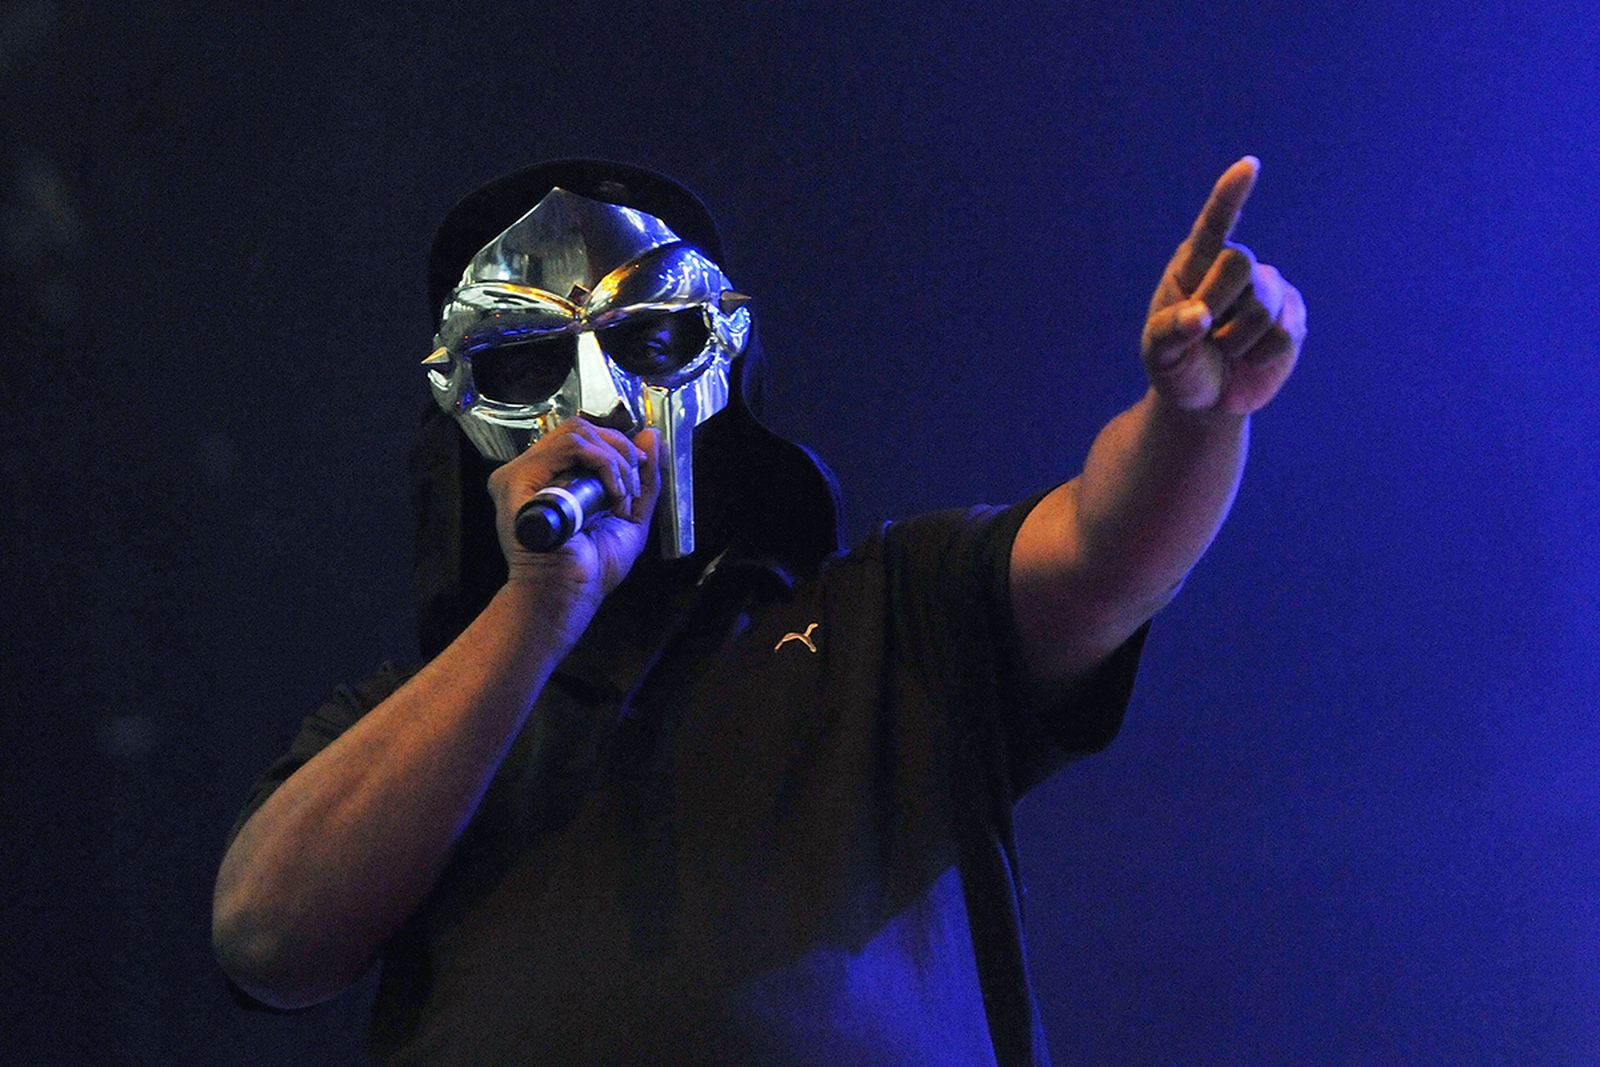 MF Doom performs live on stage